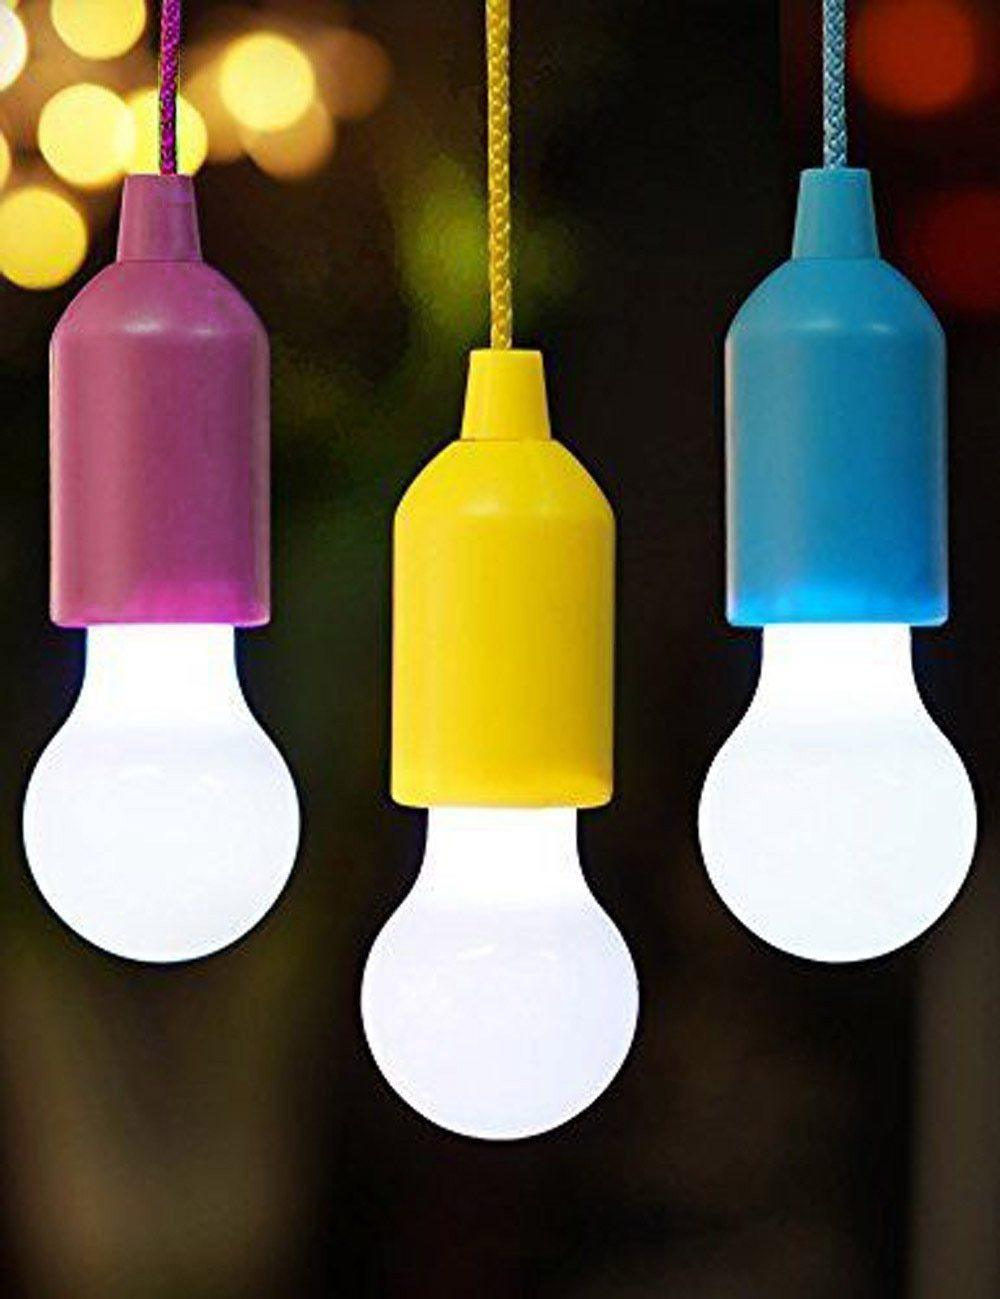 LED Pull Lamp | Electronics - Portable Deco Bulb Energy-Efficient LED Pull Light Lamp